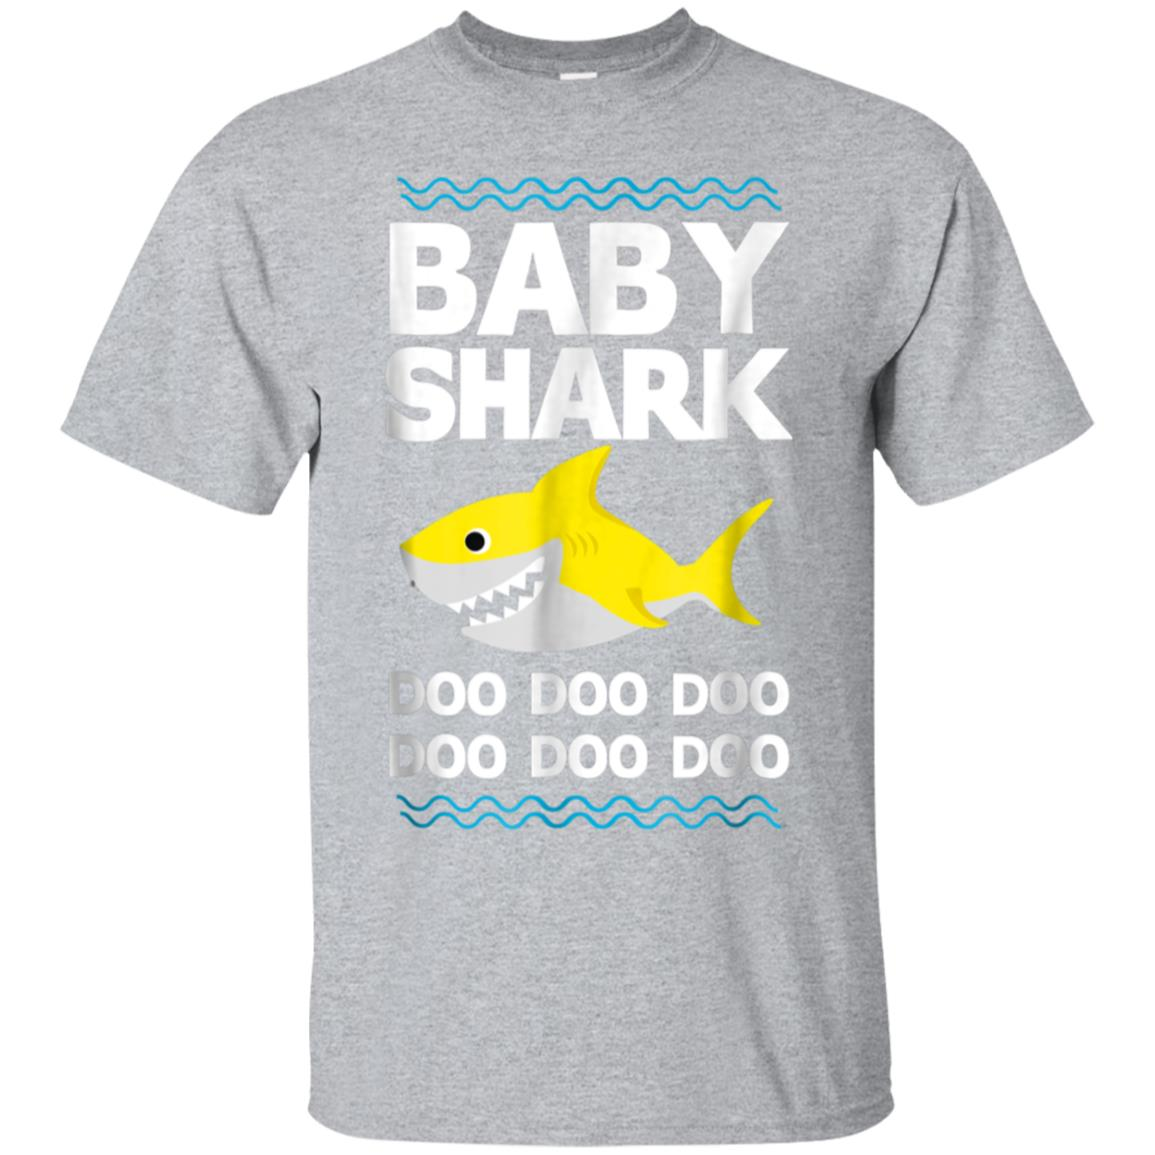 Baby Shark Doo Doo T-Shirt Mommy Daddy Brother Kid Tee 99promocode